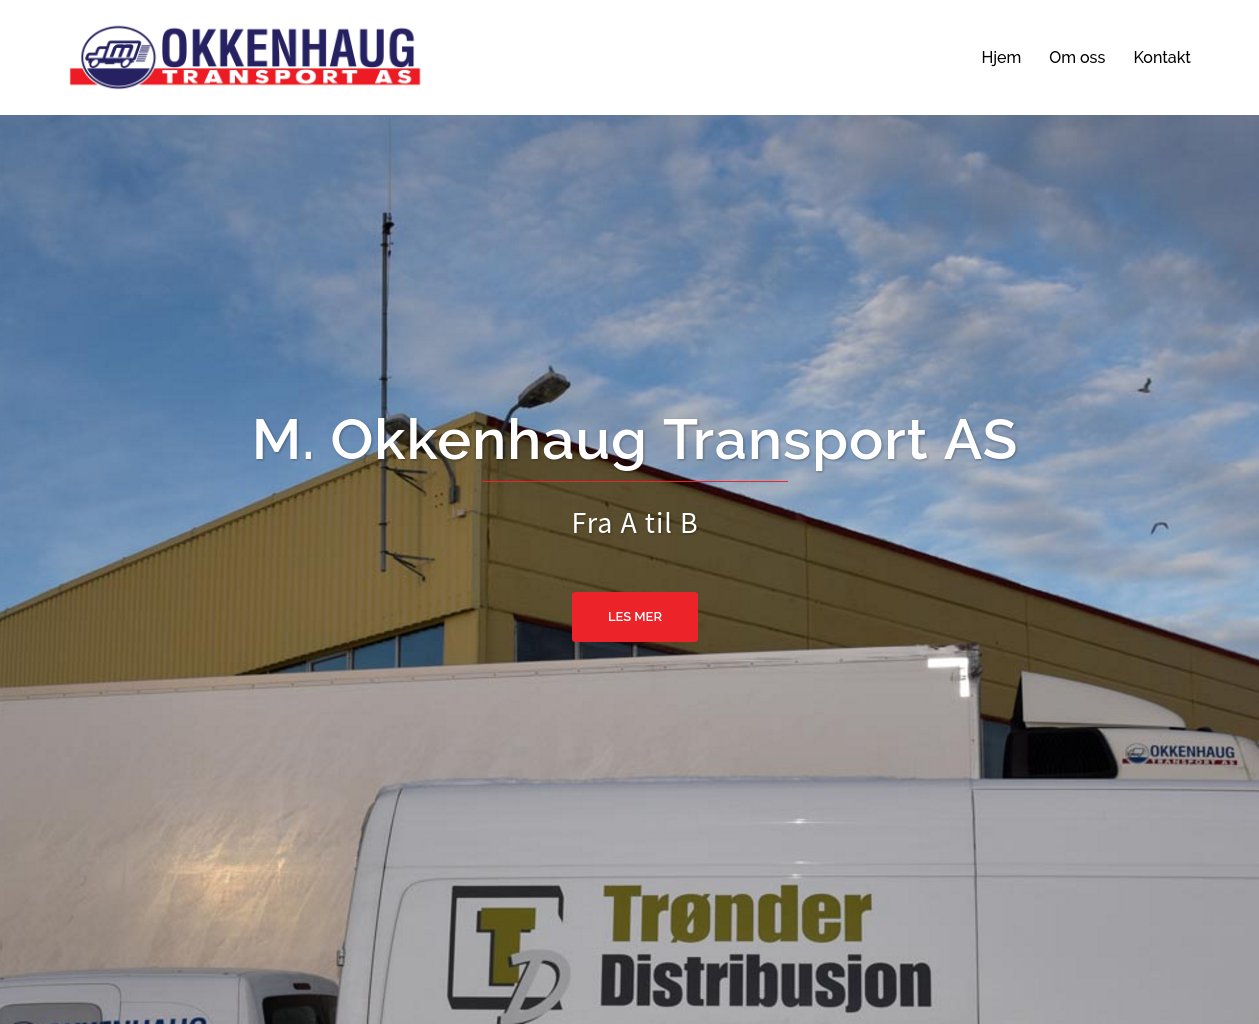 mokkenhaugtransport.no presentation